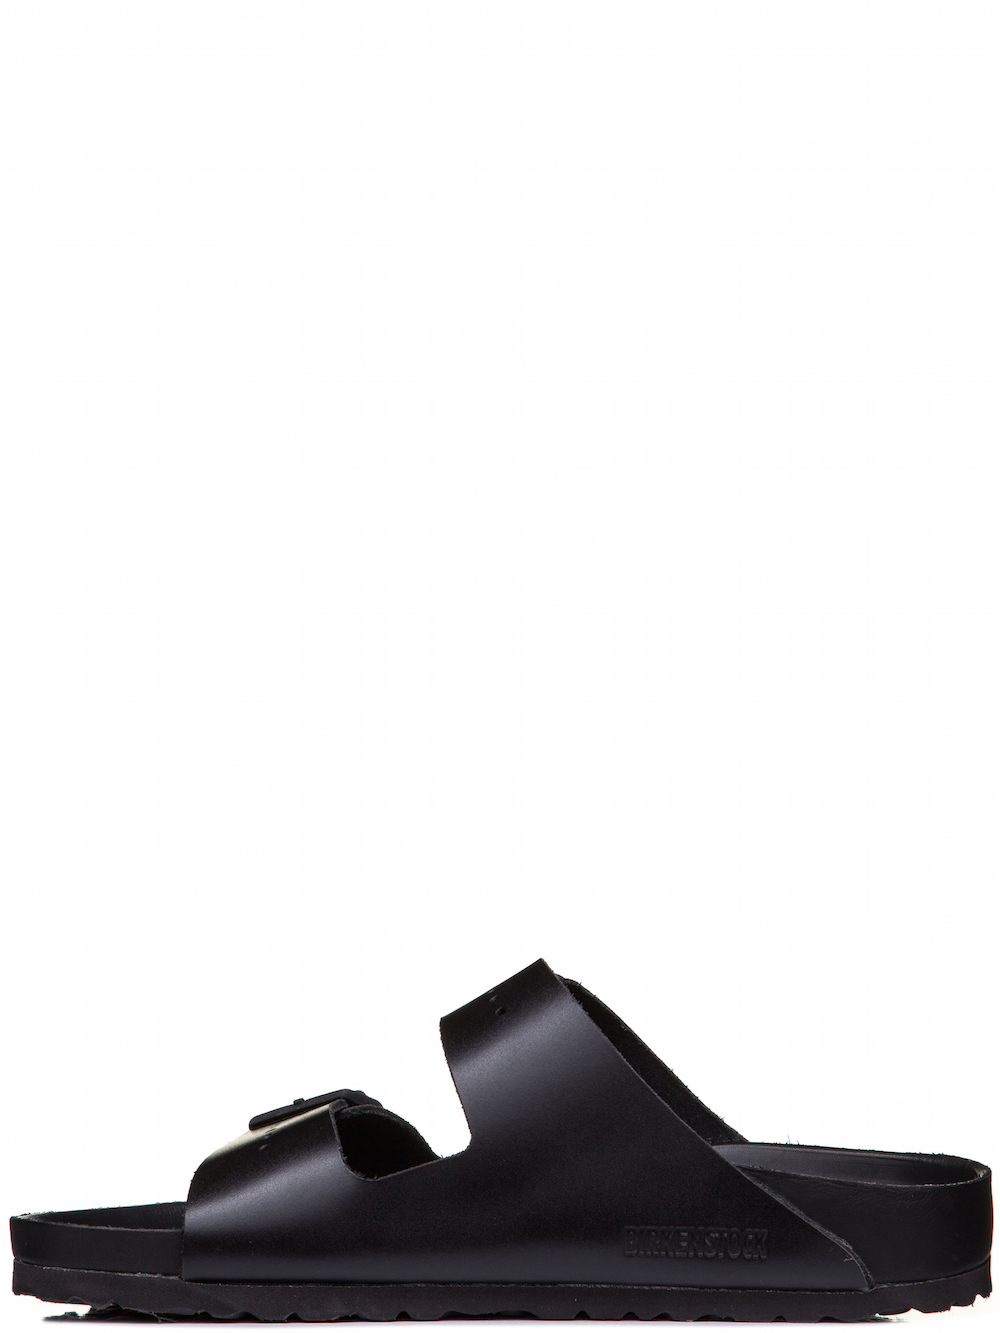 RICK OWENS X BIRKENSTOCK ARIZONA SANDAL IN BLACK